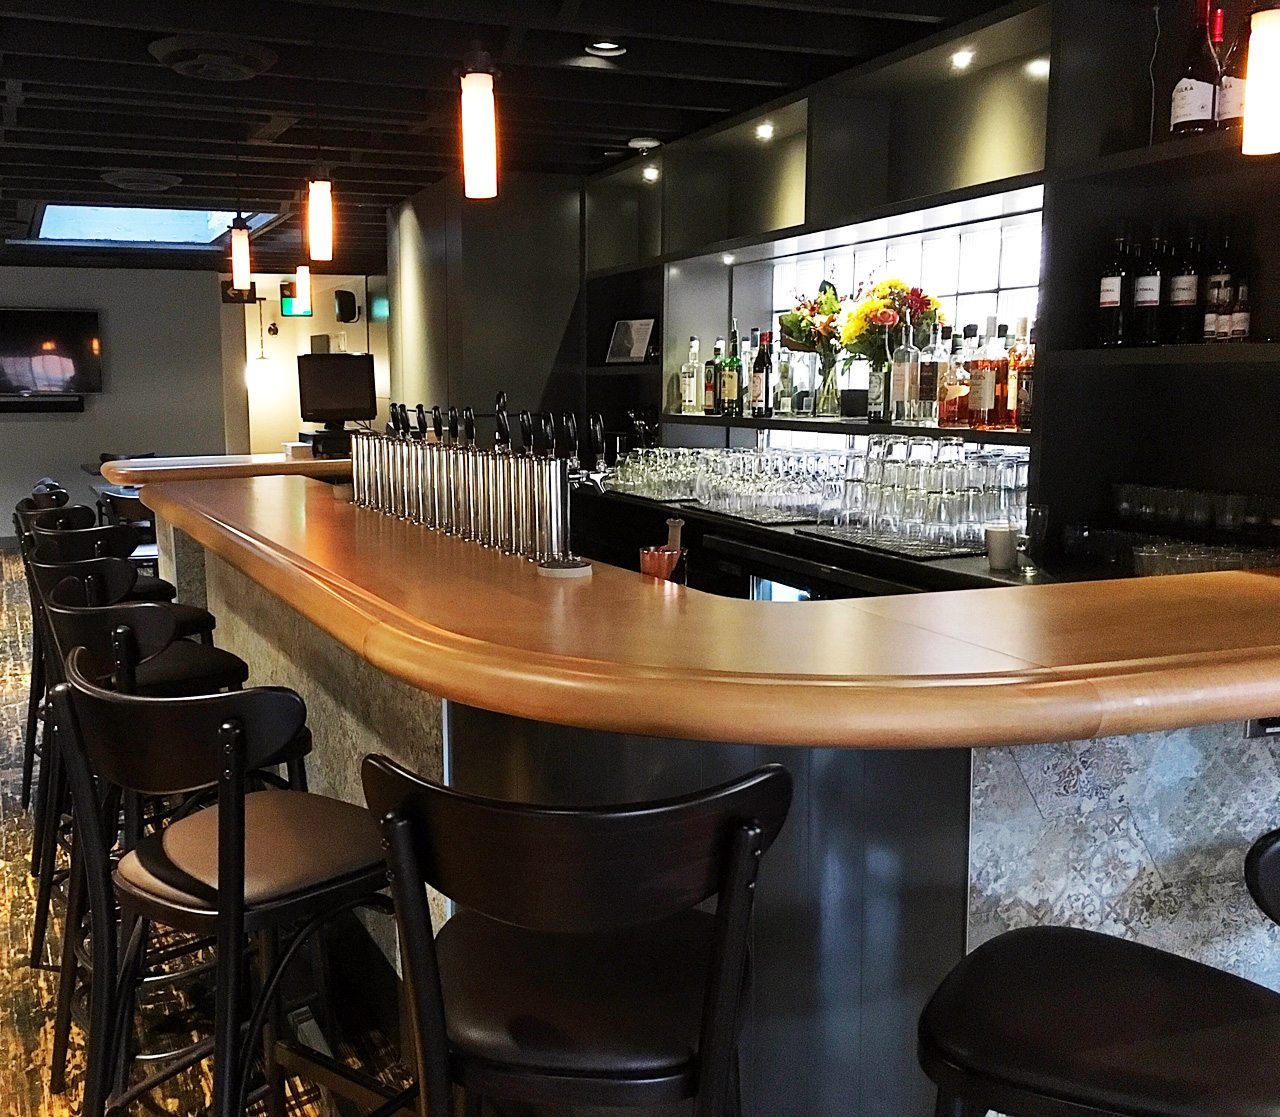 Each floor has its own bar. The upstairs seating area (shown) seats 50 guests